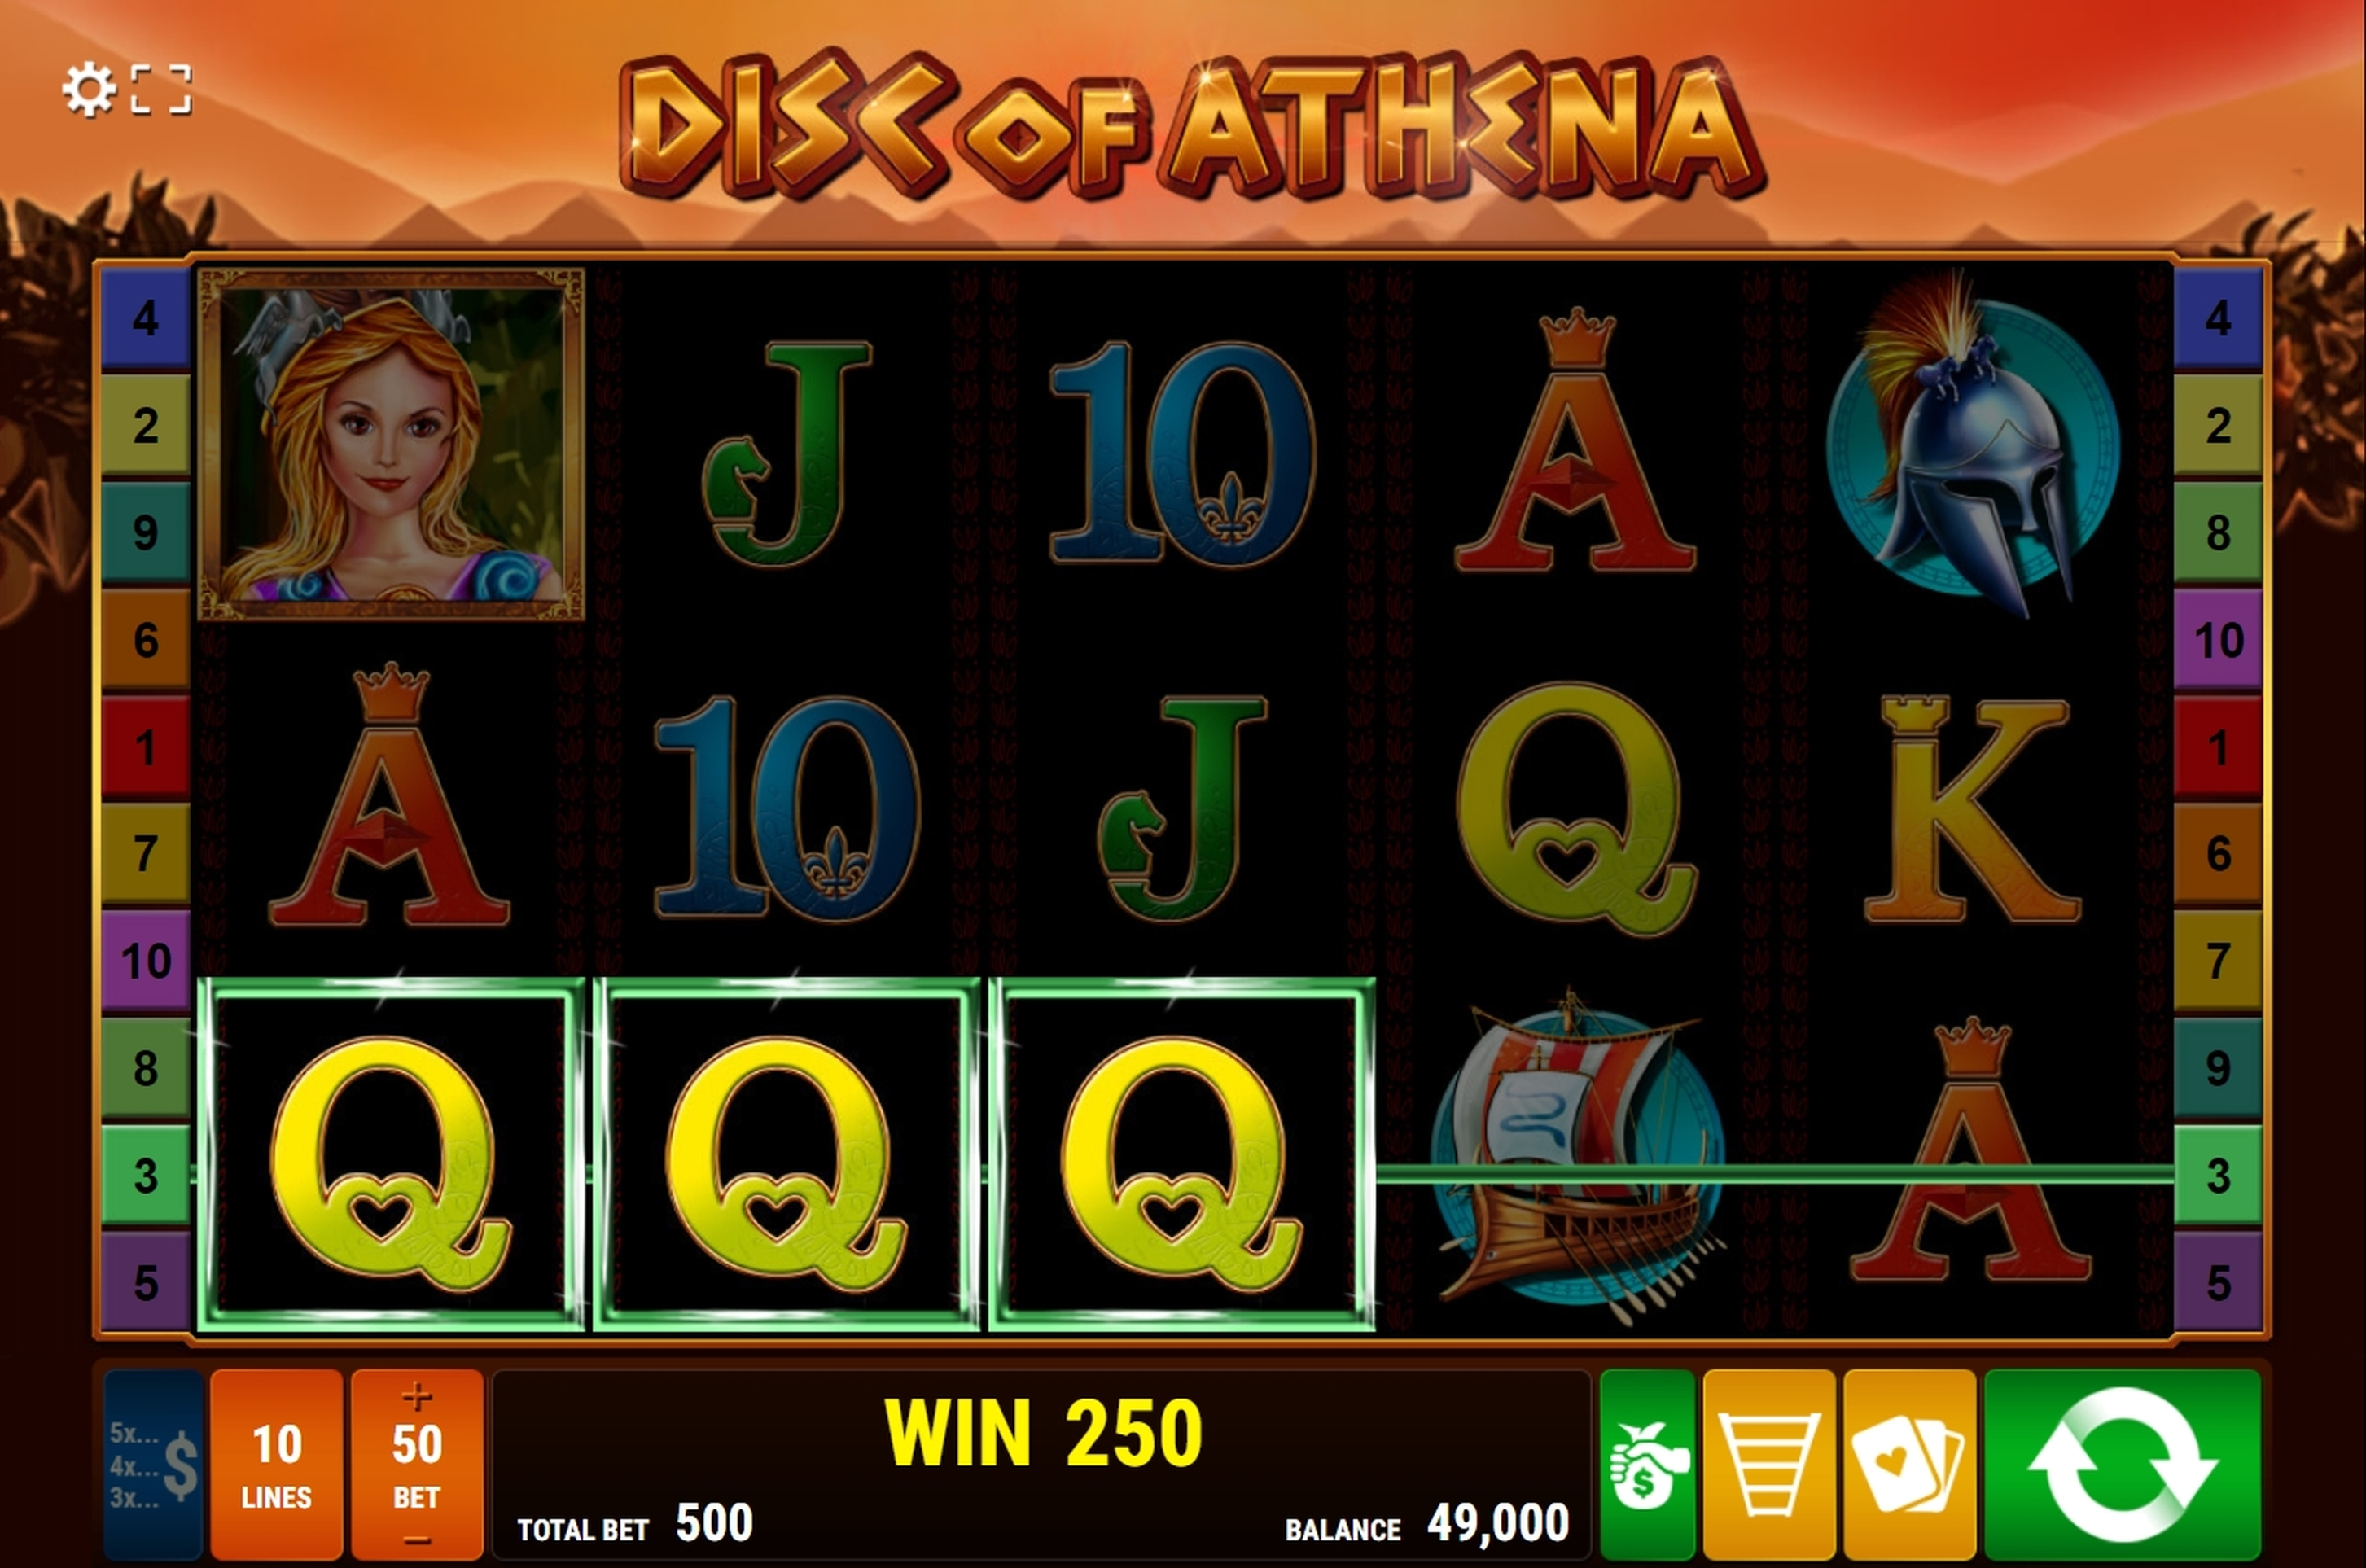 Win Money in Disc of Athena Free Slot Game by Bally Wulff